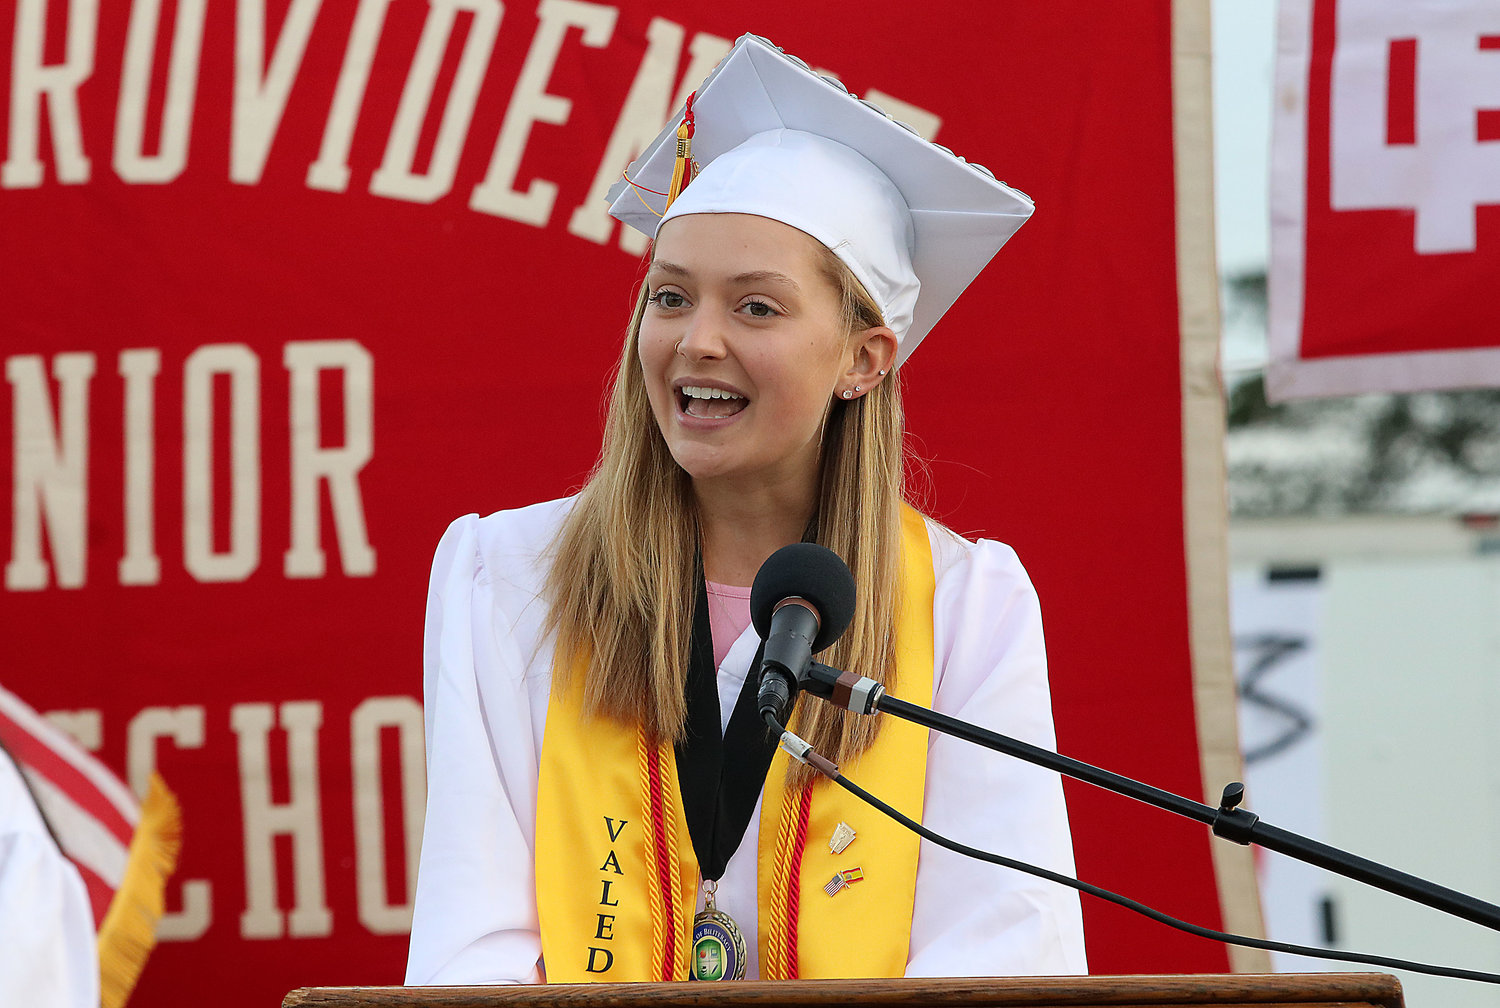 EPHS Class of 2019 valedictorian Ellen Phillips delivers her commencement address.